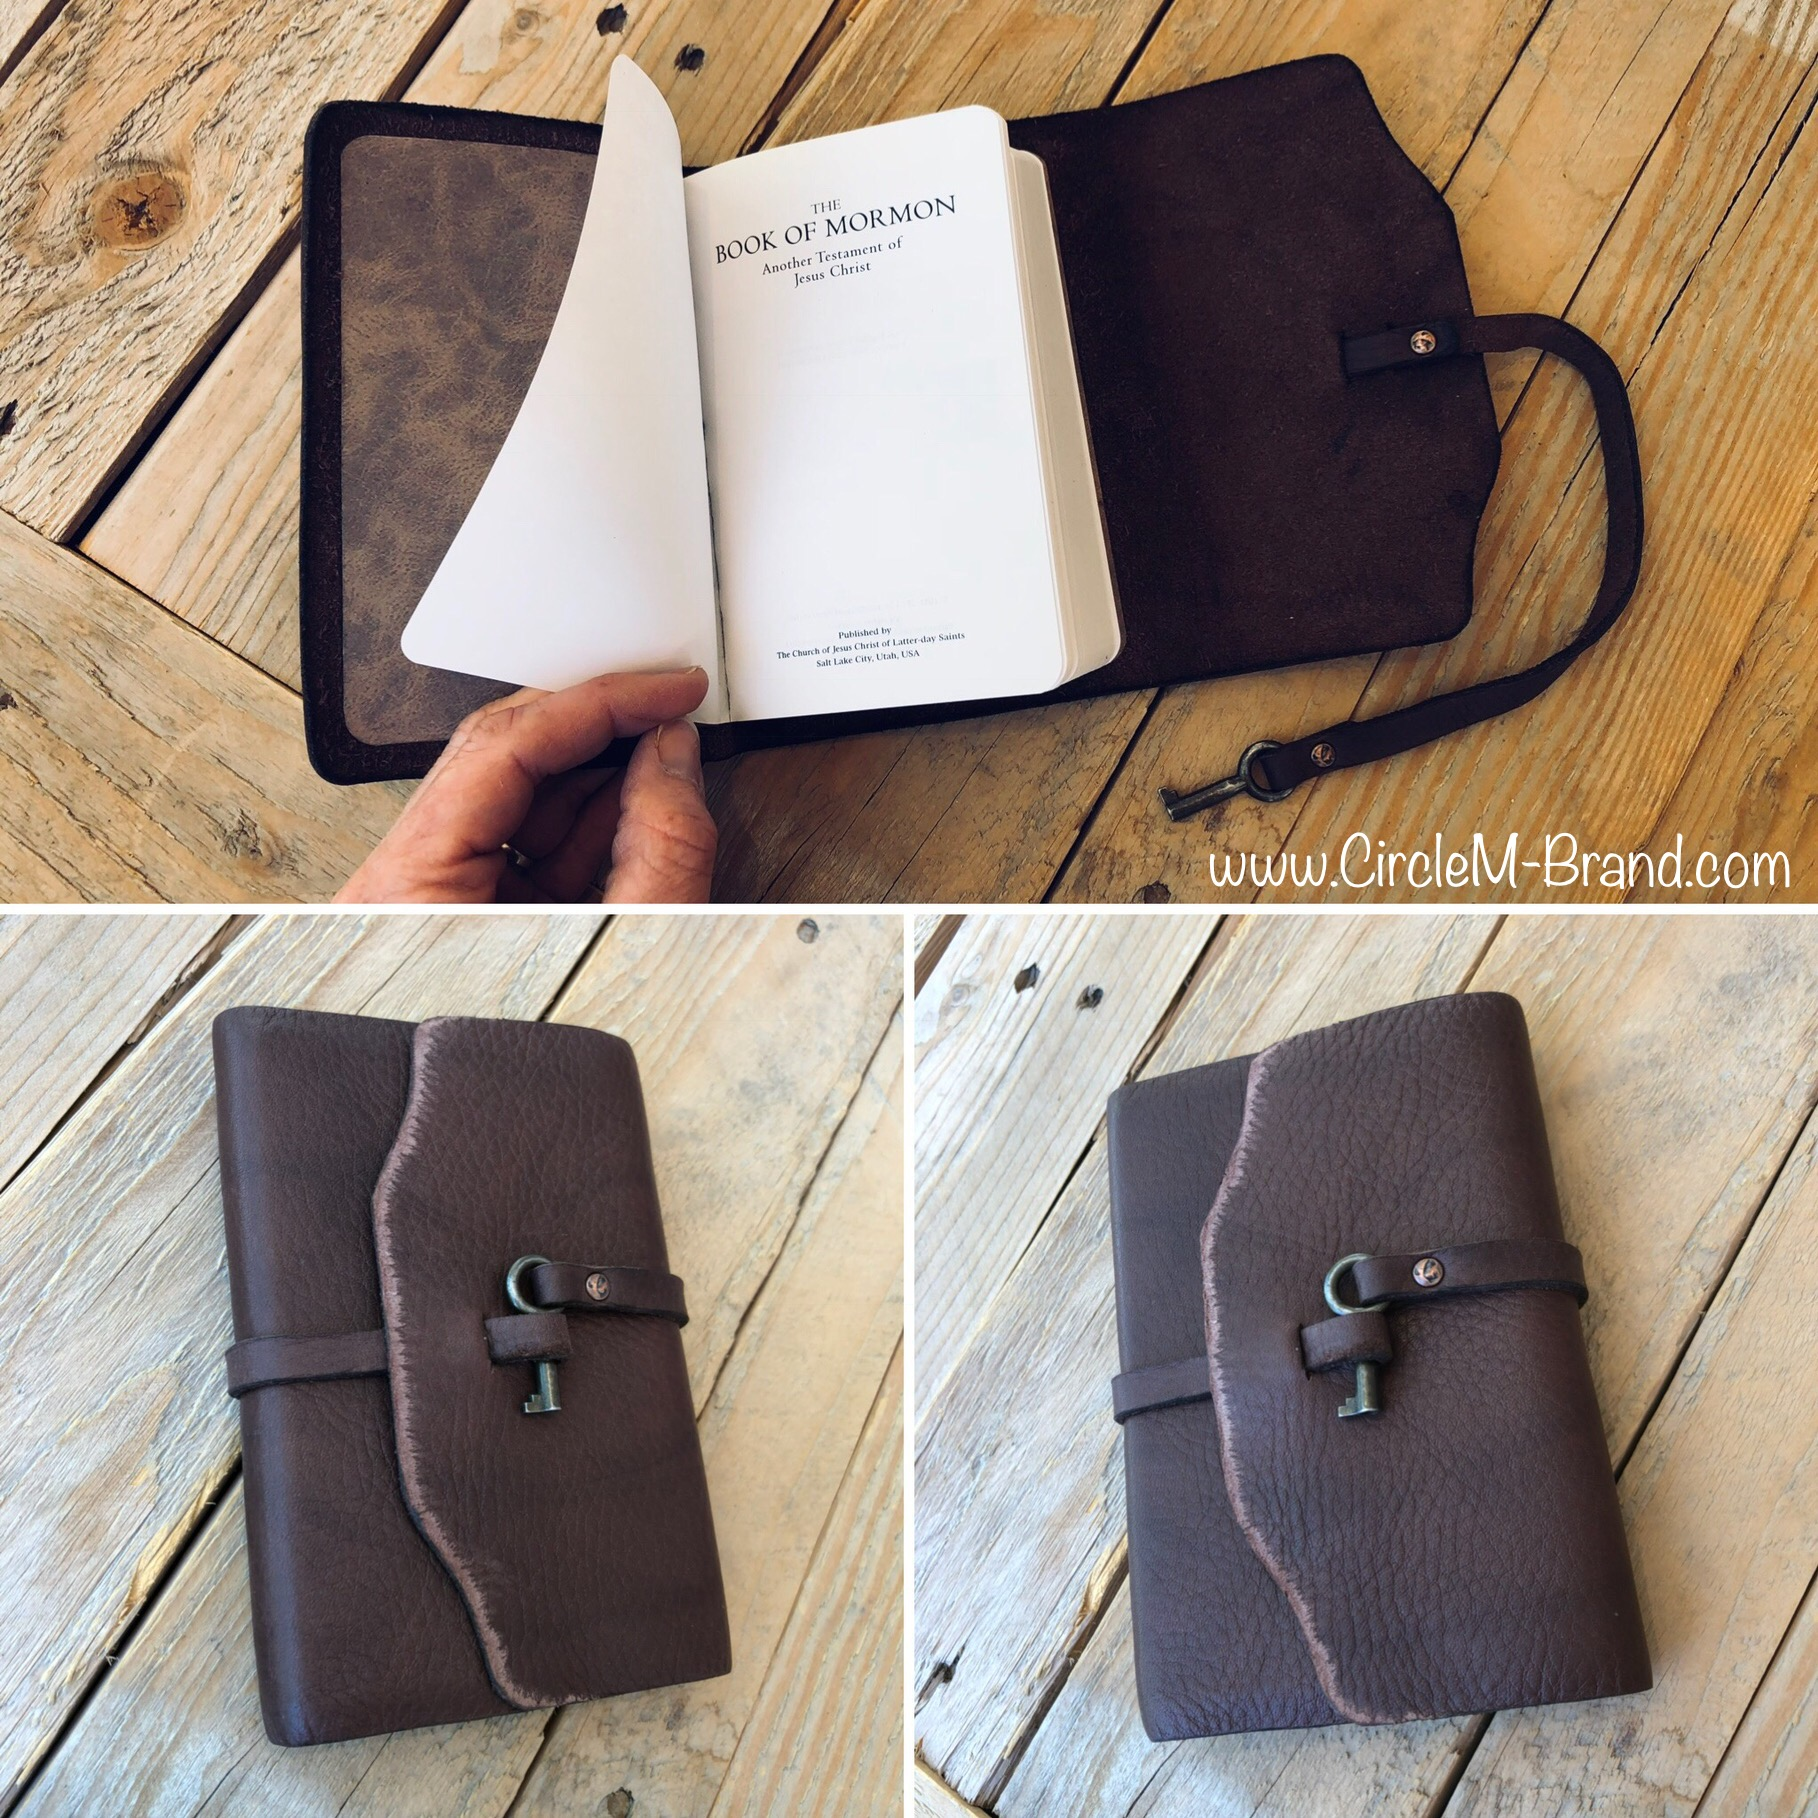 FOR SALE - Handmade Leather Book of Mormon  (above)  Compact  (3½x5) - not thumb indexed with glued binding.  $58  ( $14  shipping & sales tax applies to UT residence) Email me at:  CircleM@outlook.com